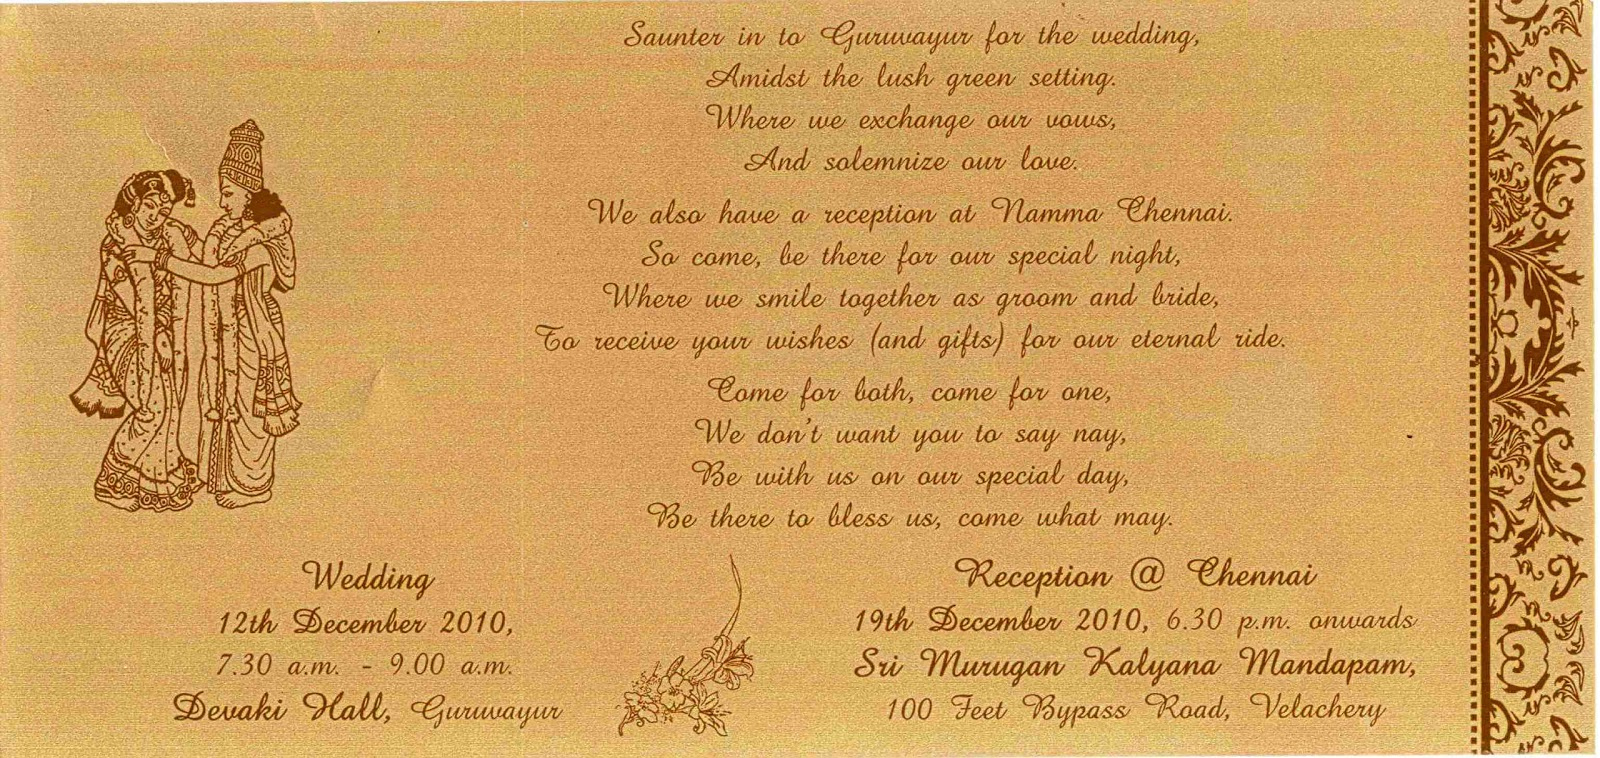 Dinner Invite Wording was awesome invitations sample